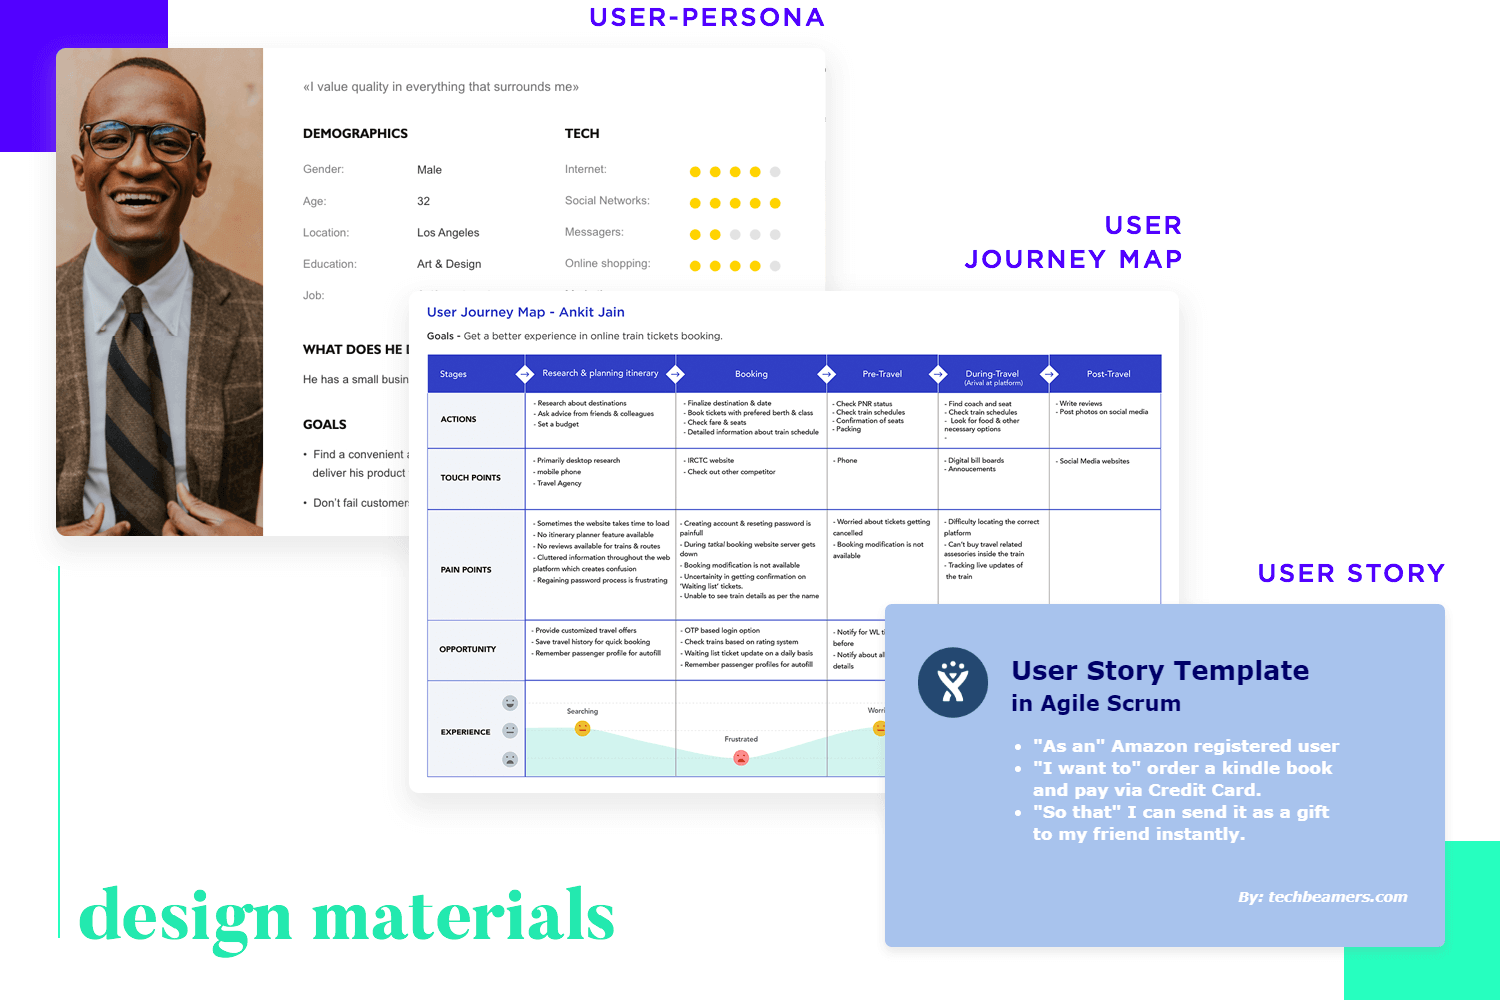 using materials for design like user personas and mental models